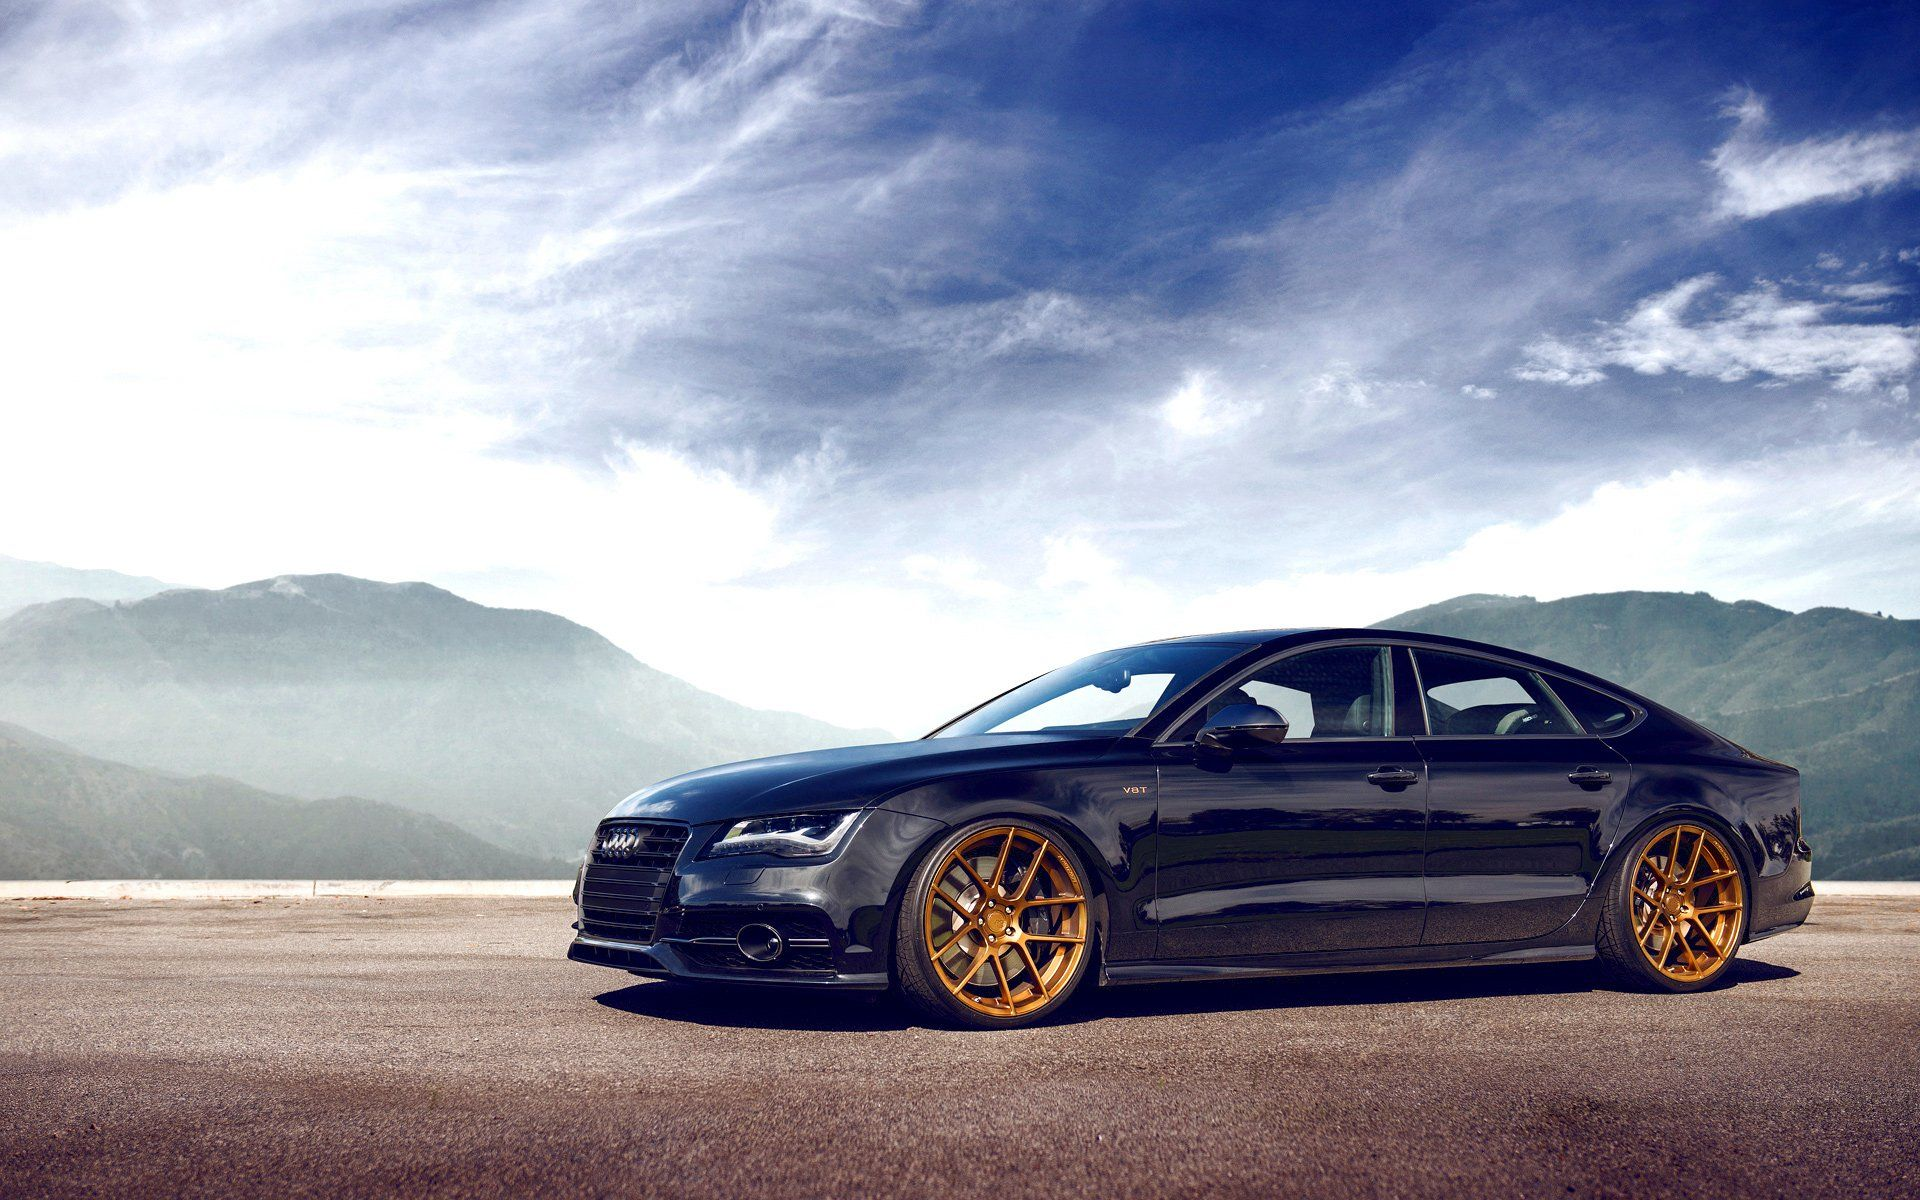 4k Audi A7 Wallpapers Top Free 4k Audi A7 Backgrounds Wallpaperaccess